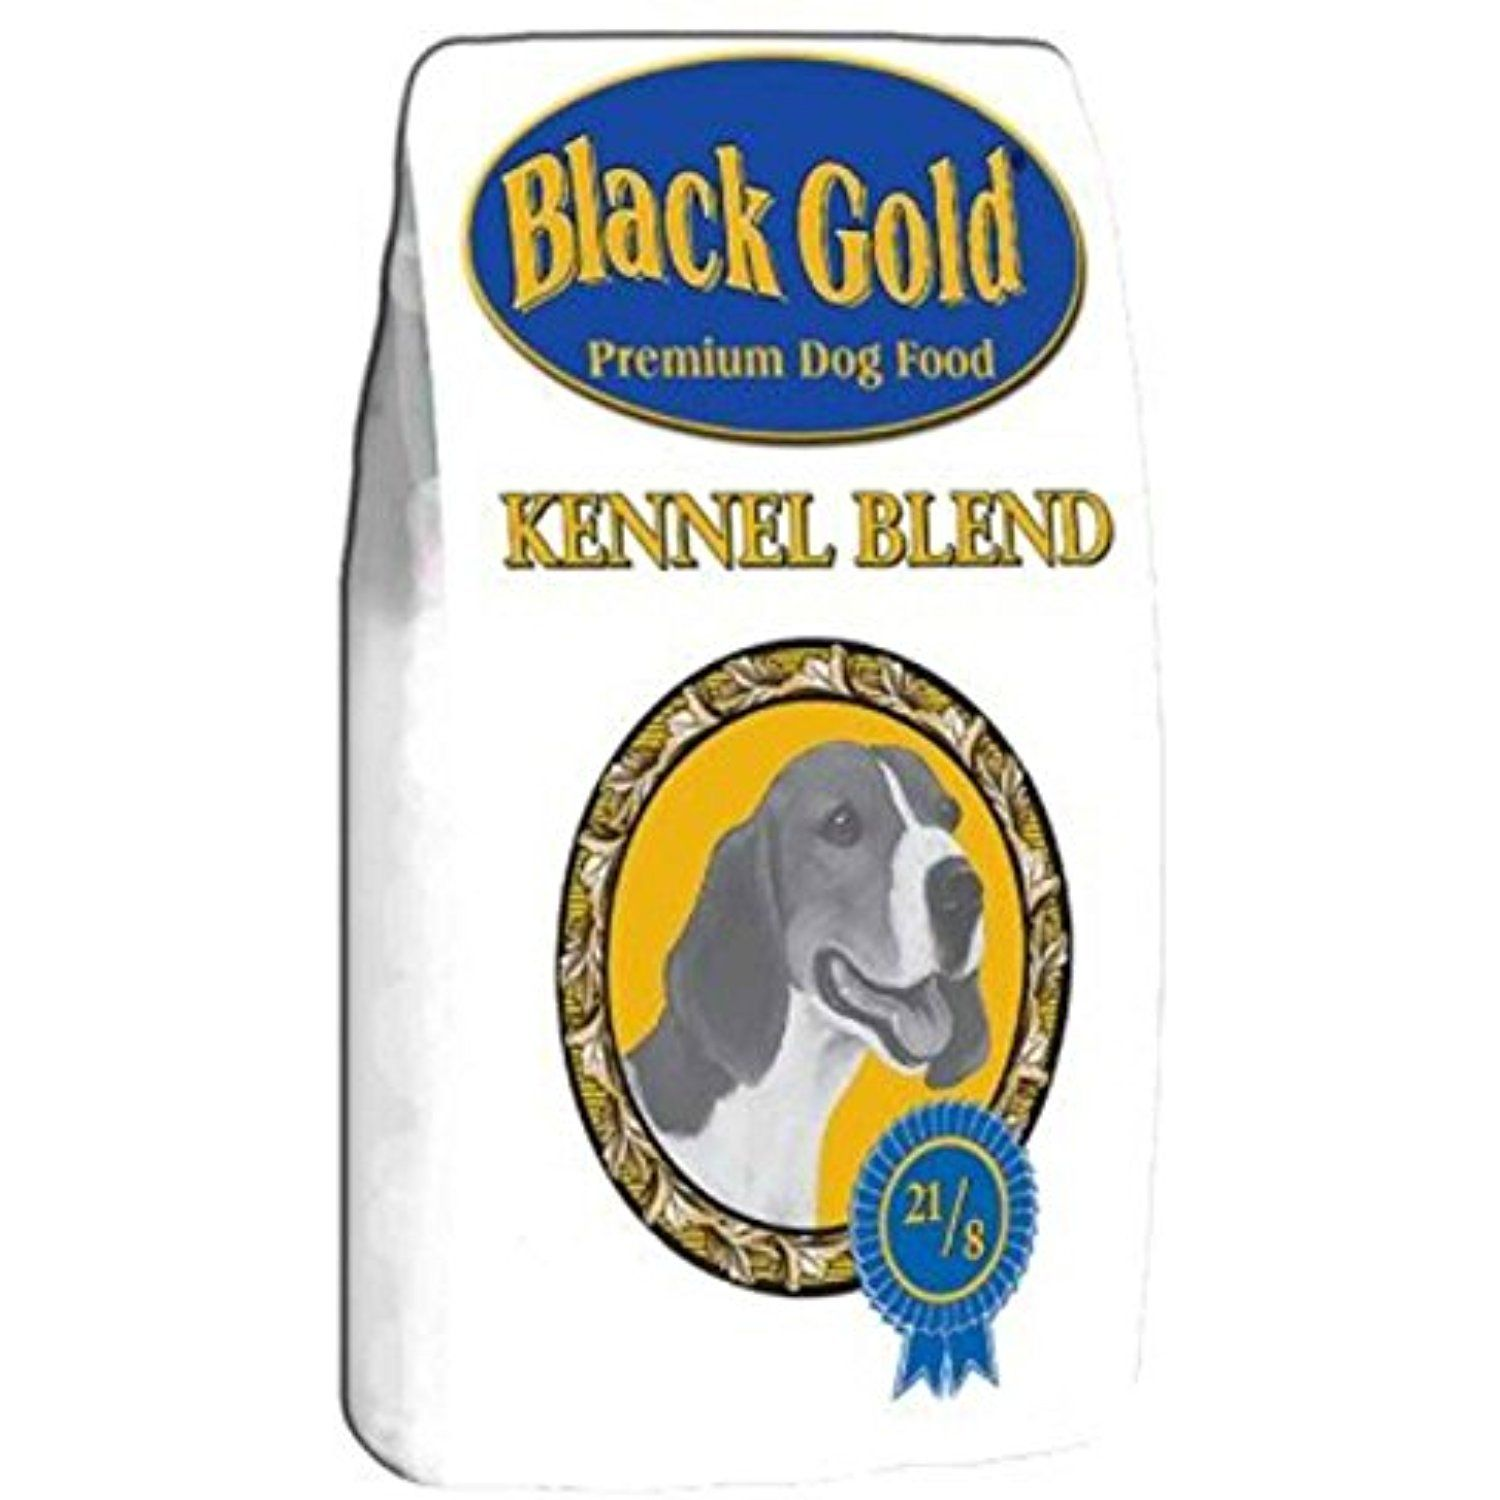 Black Gold Pet Foods Kennel Blend 21 8 50lb You Can Check Out